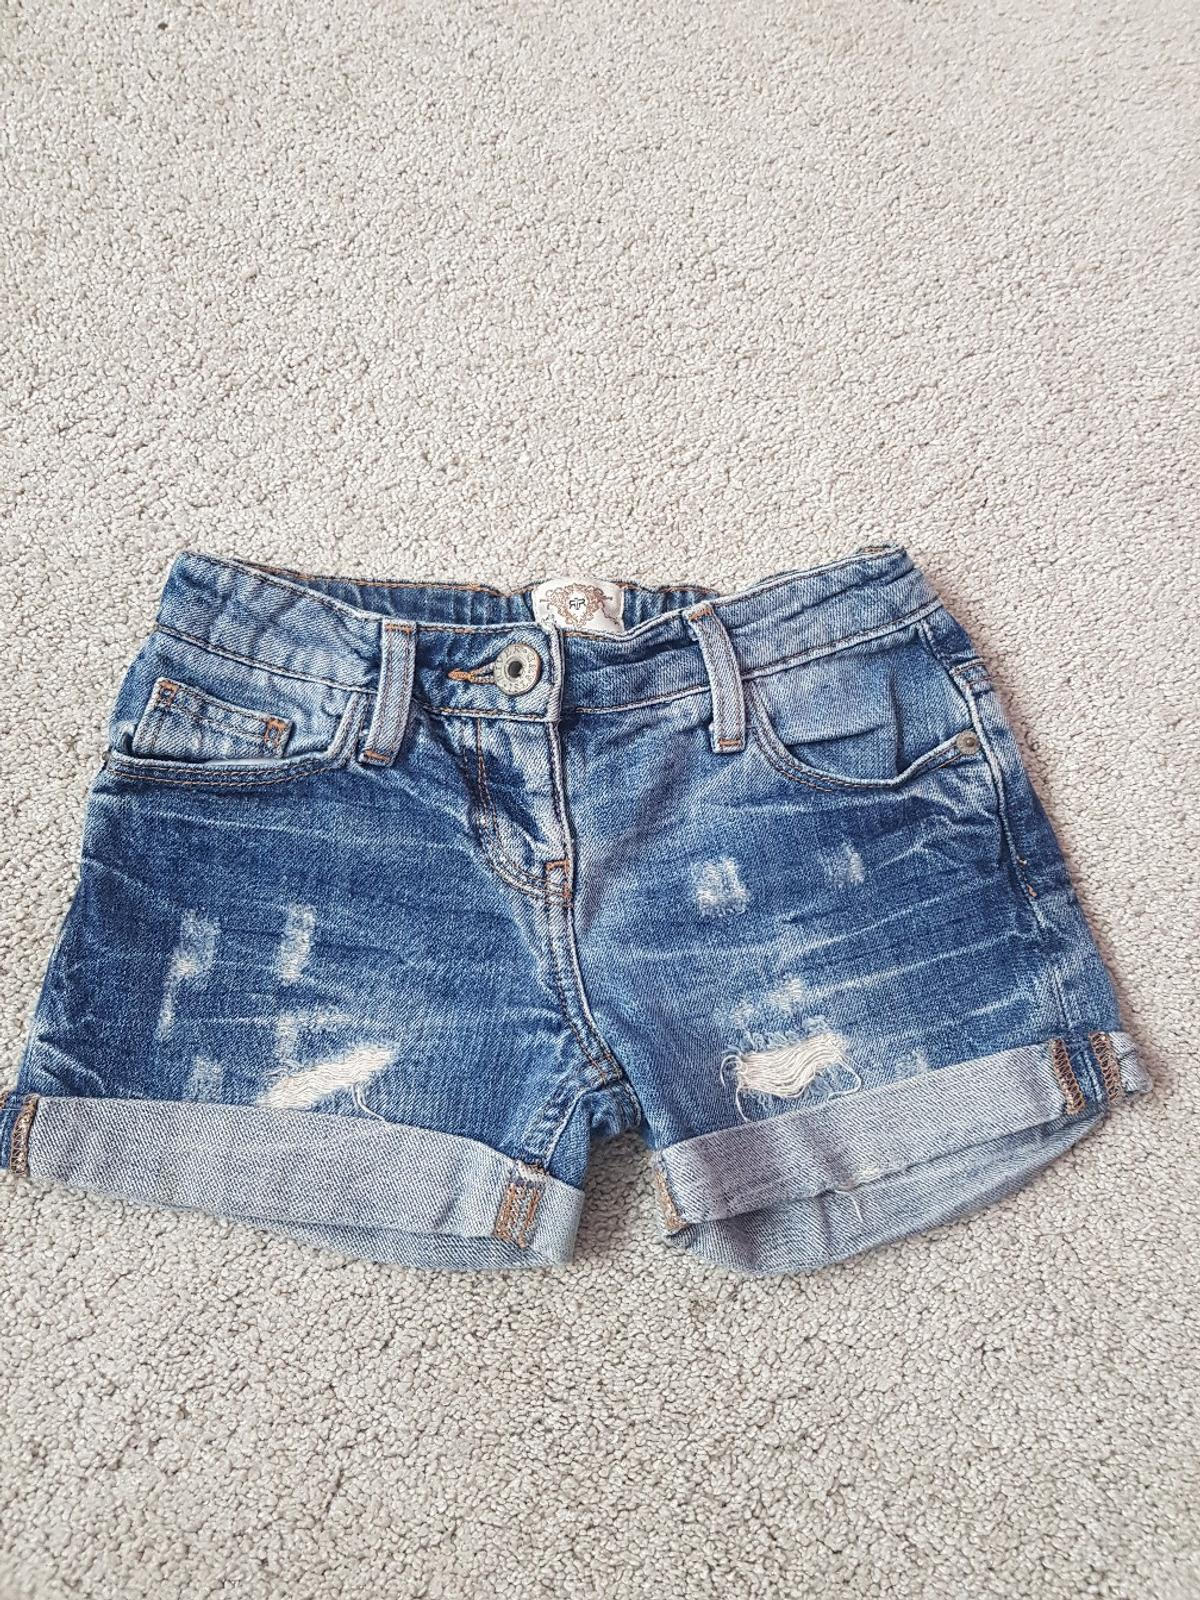 girls pretty denim shorts. from River Island. age 5-6years. sfs